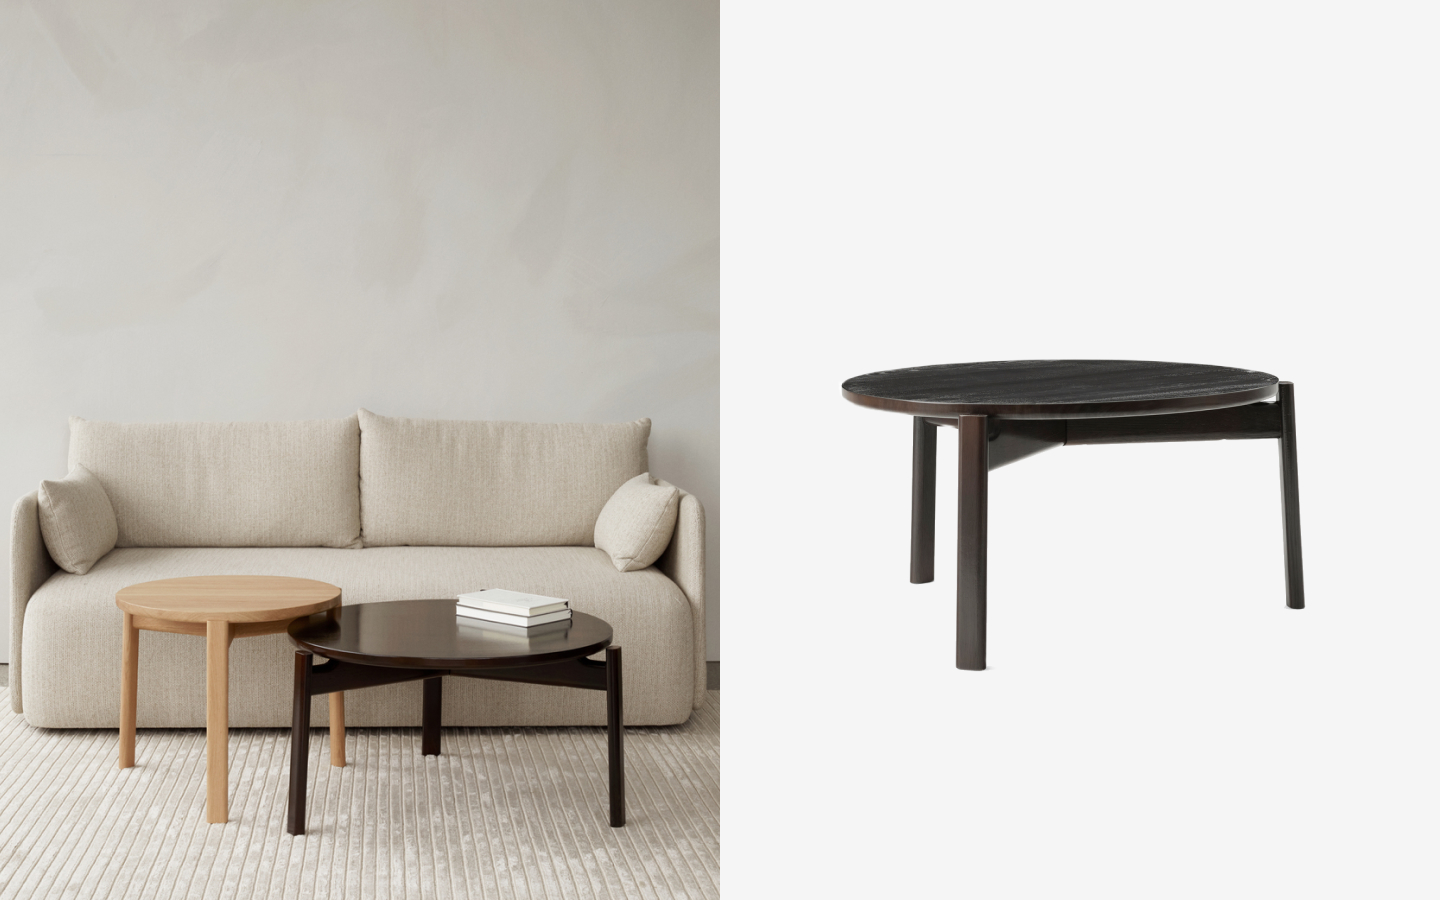 Sofa with bright and dark wood side tables